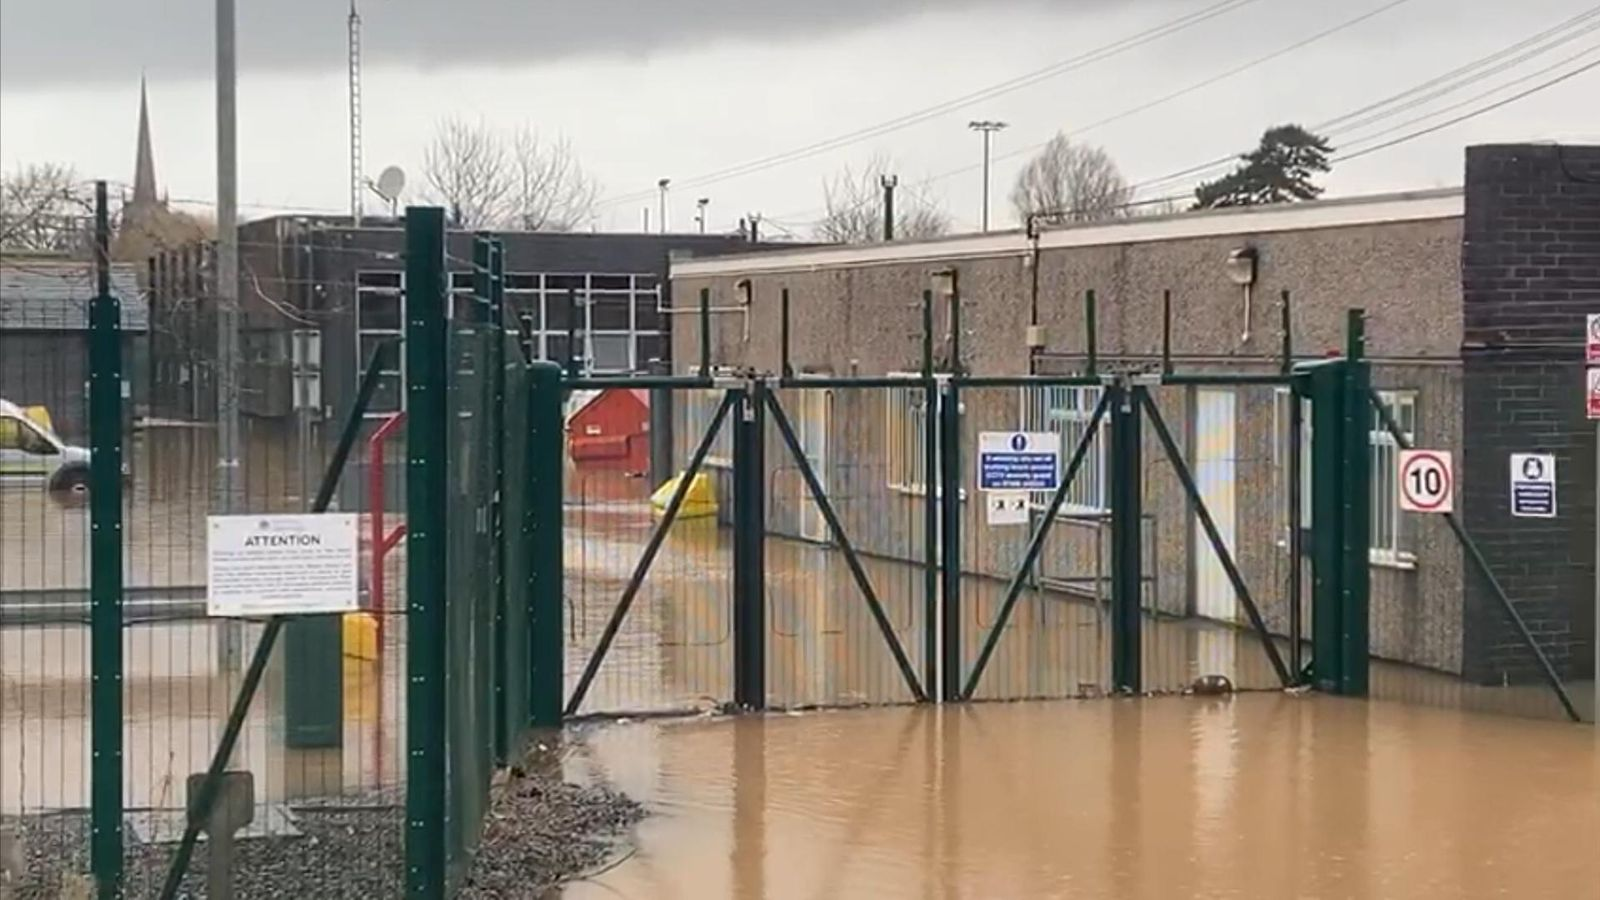 Storm Dennis: Drinking water supplies hit as flooding shuts down Monmouth water treatment plant